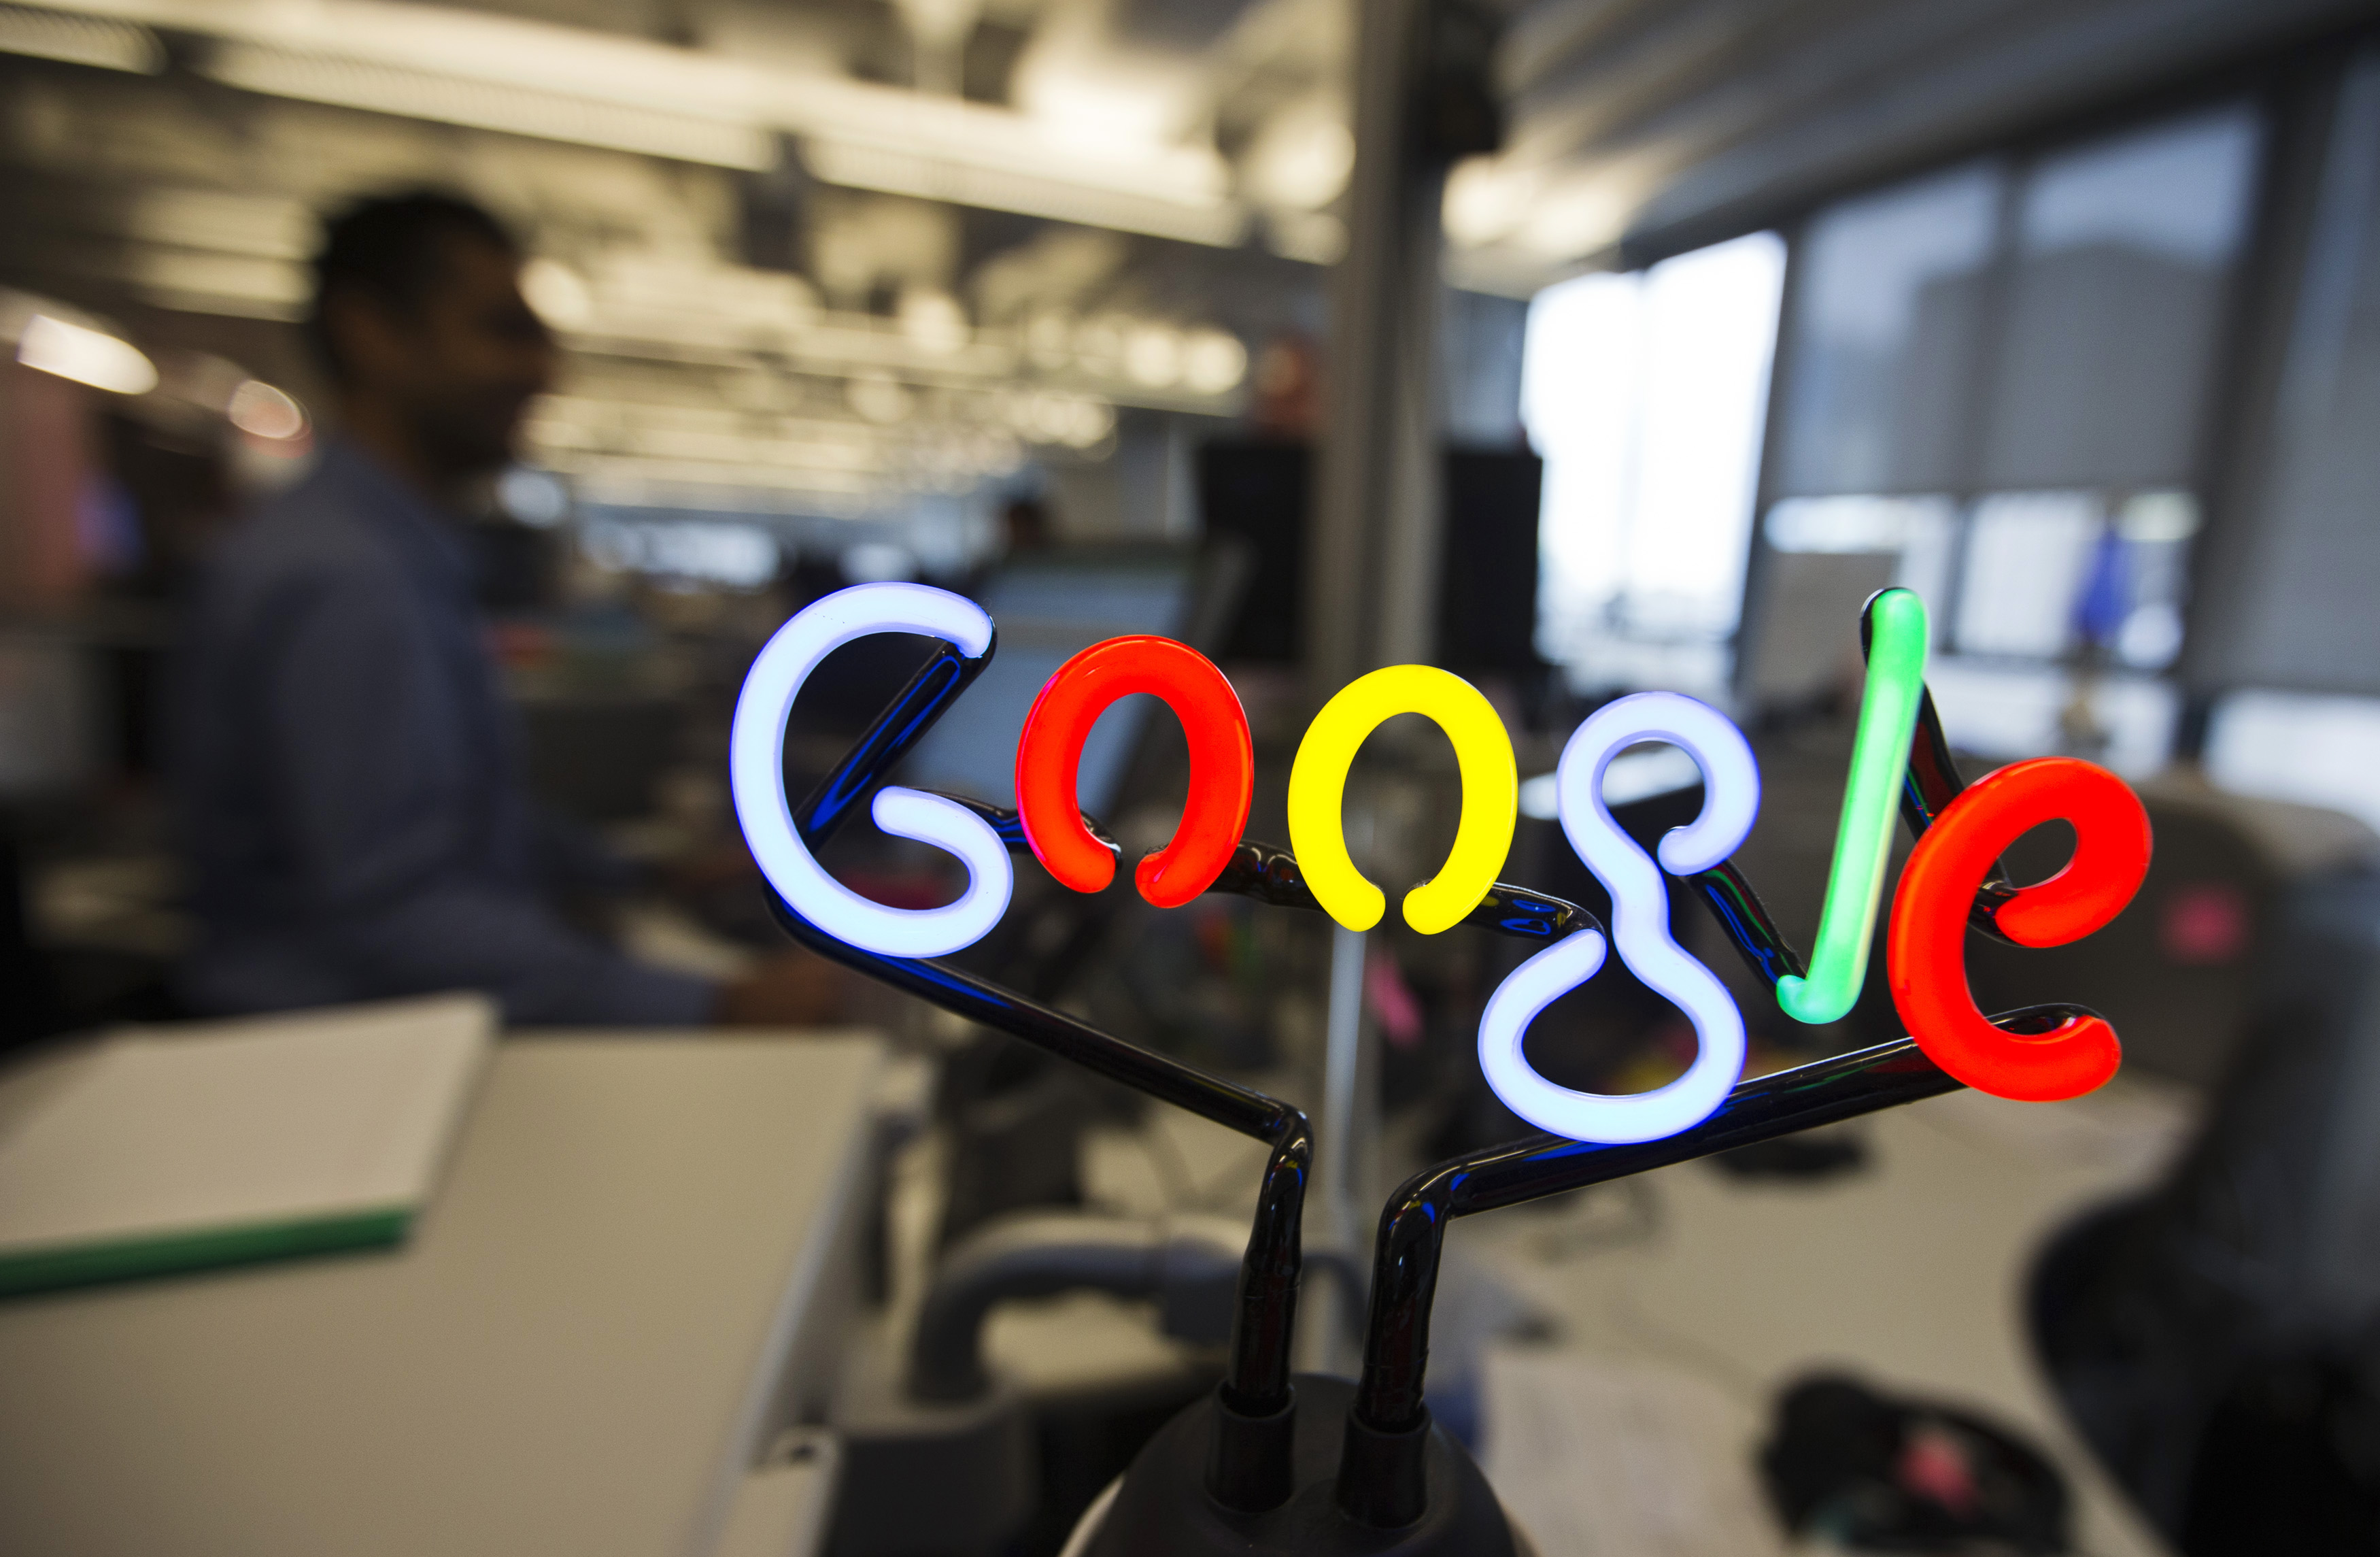 'Google it' becomes 'hide it' after right to be forgotten